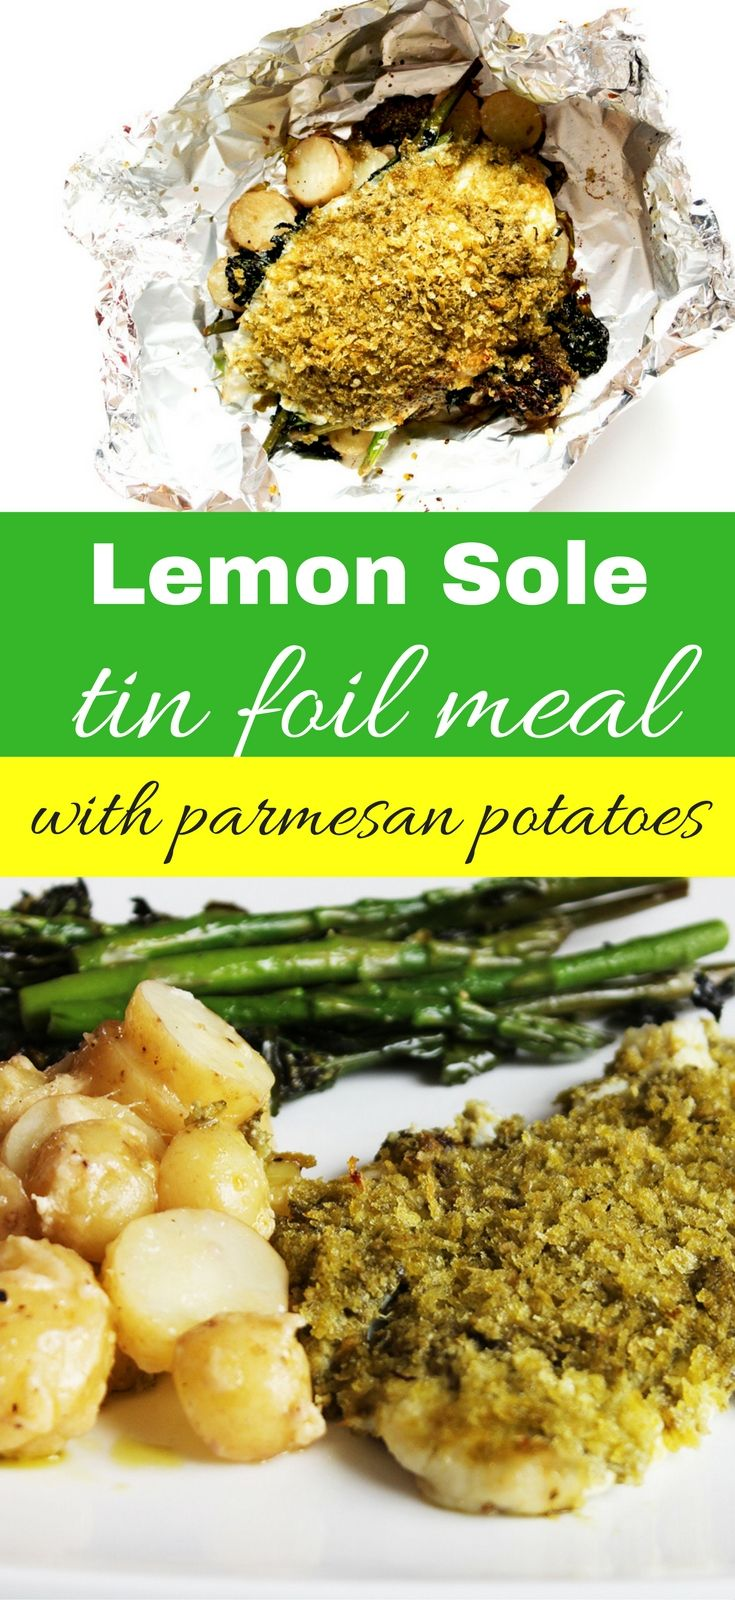 Best 25 lemon sole recipes ideas on pinterest sole for How to cook sole fish